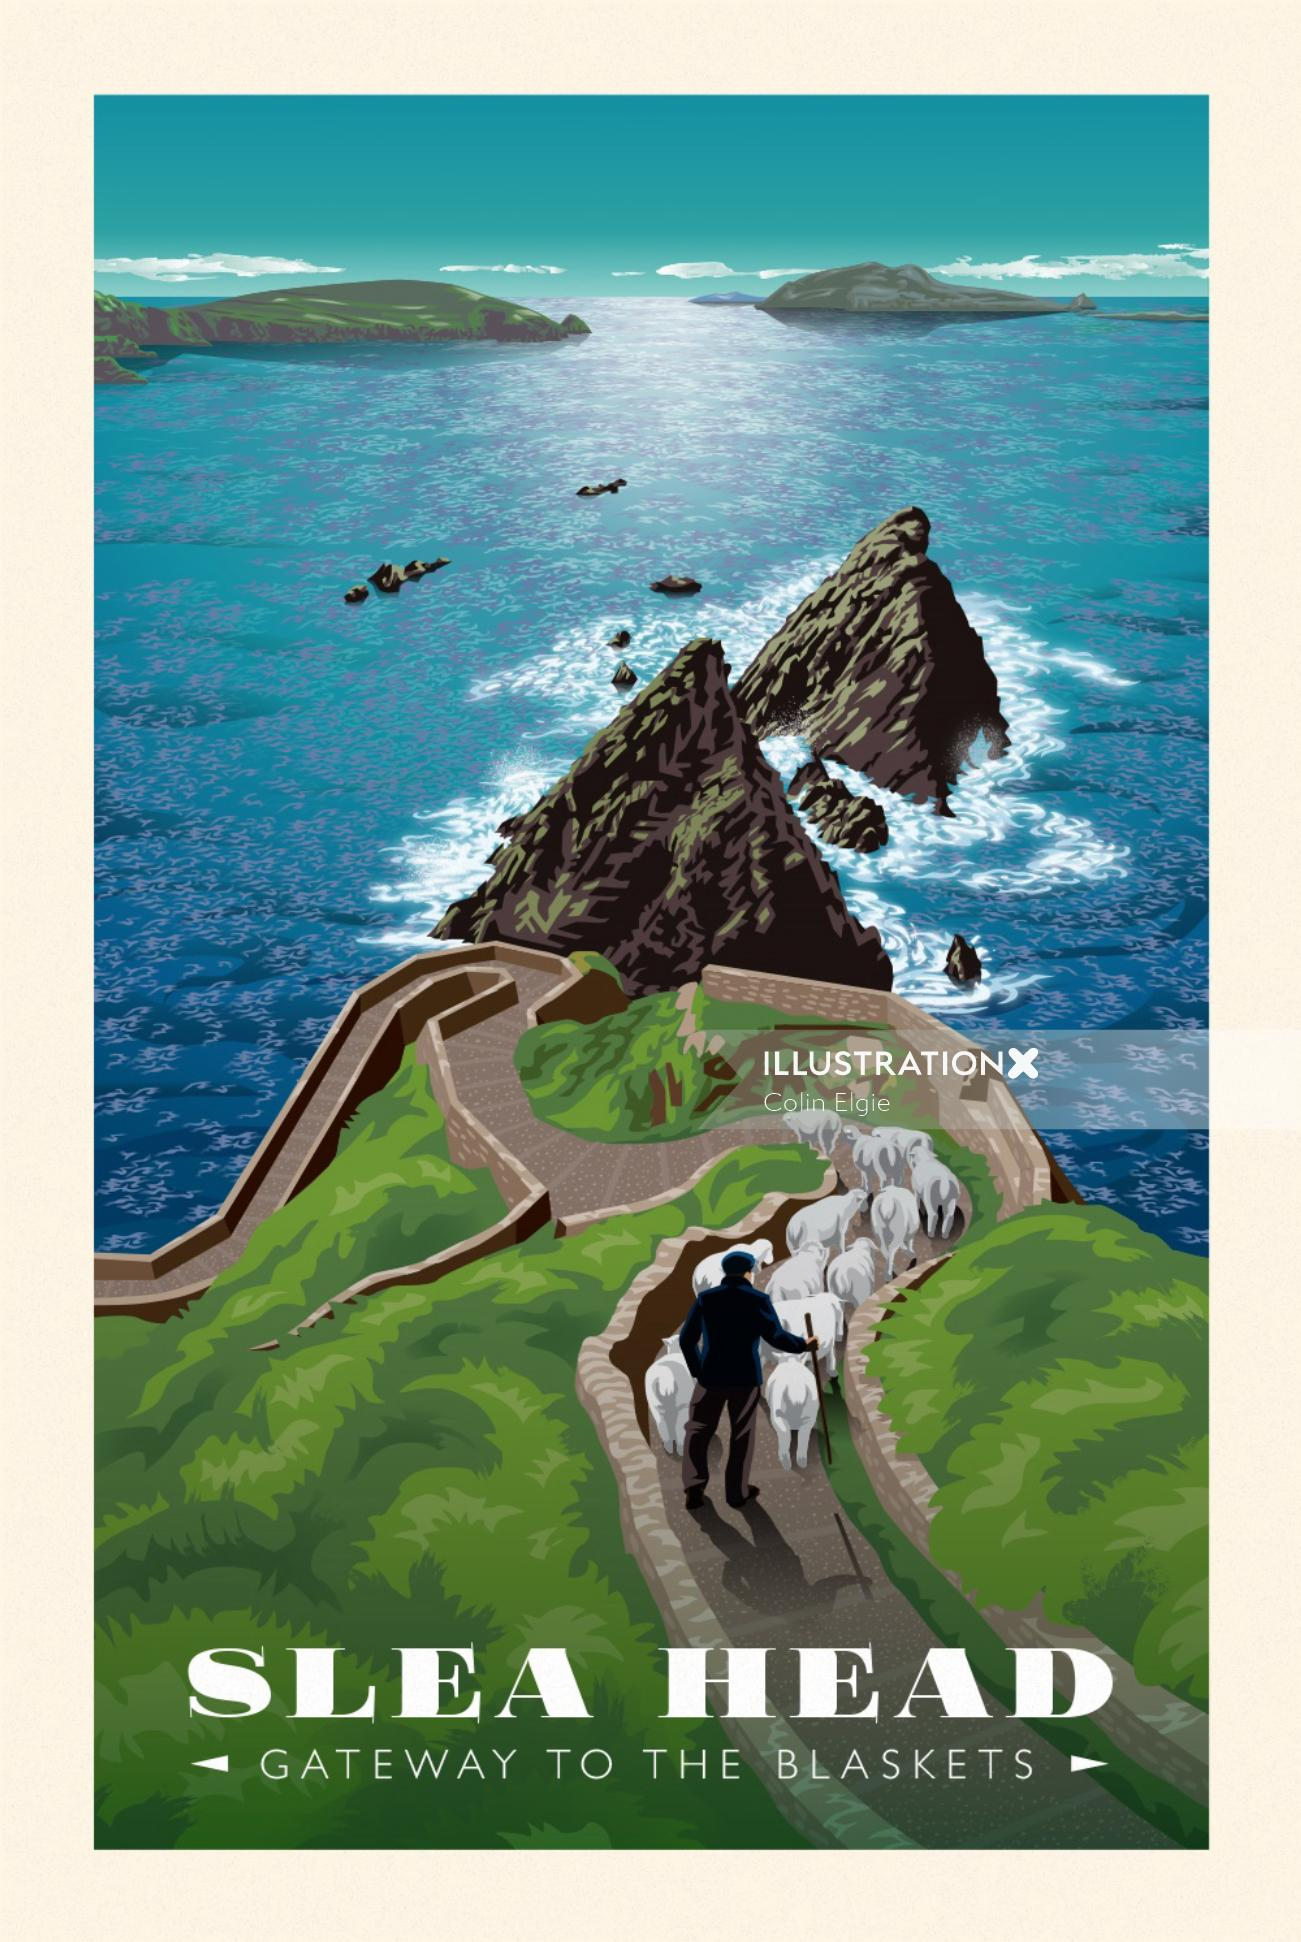 A poster showing a coastal scene with a shepherd taking his flock down to the pier at Slea Head